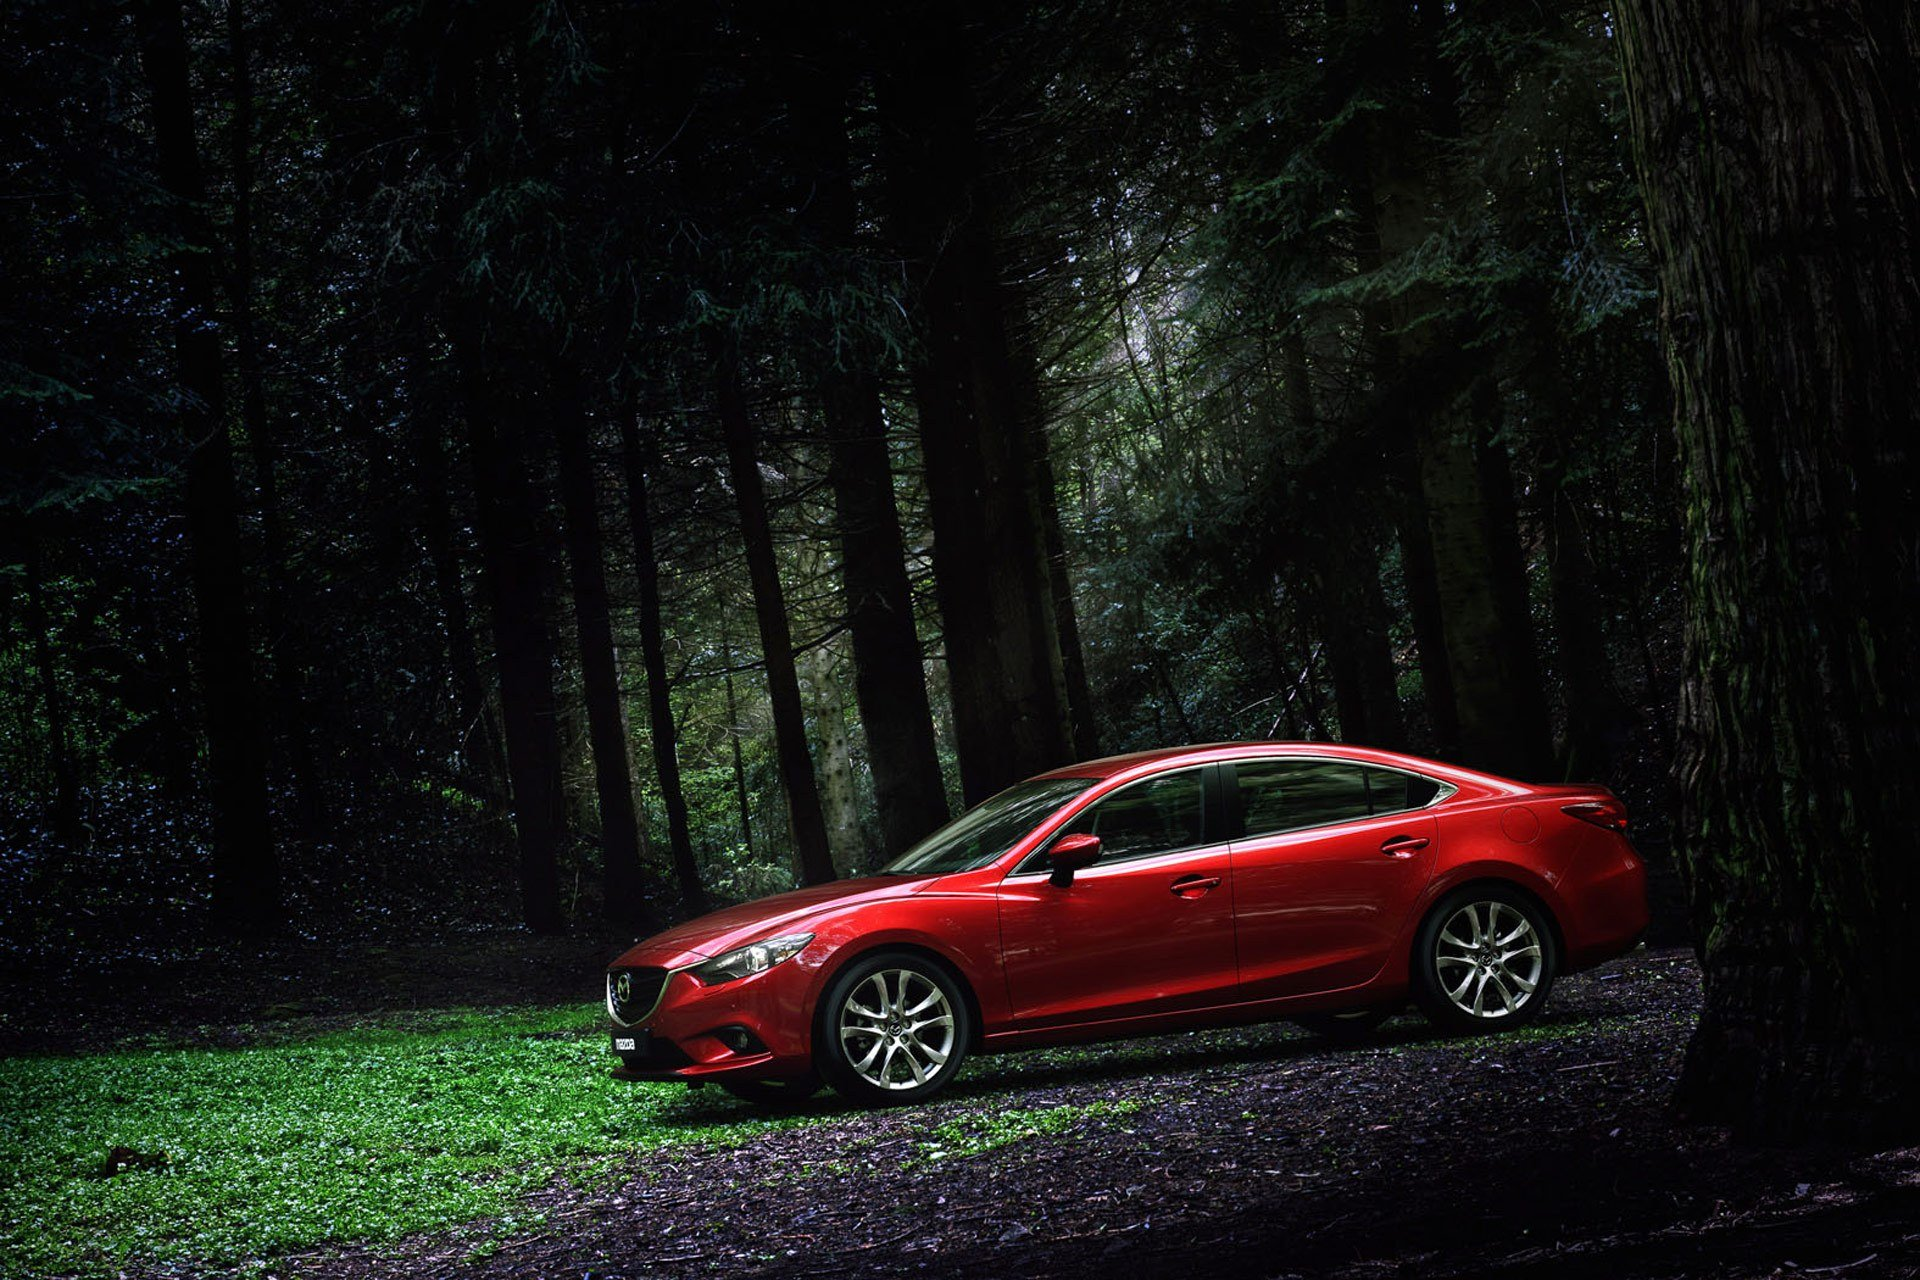 Latest 21 Coolest Collection Of Mazda 6 Car Wallpaper For Your Free Download